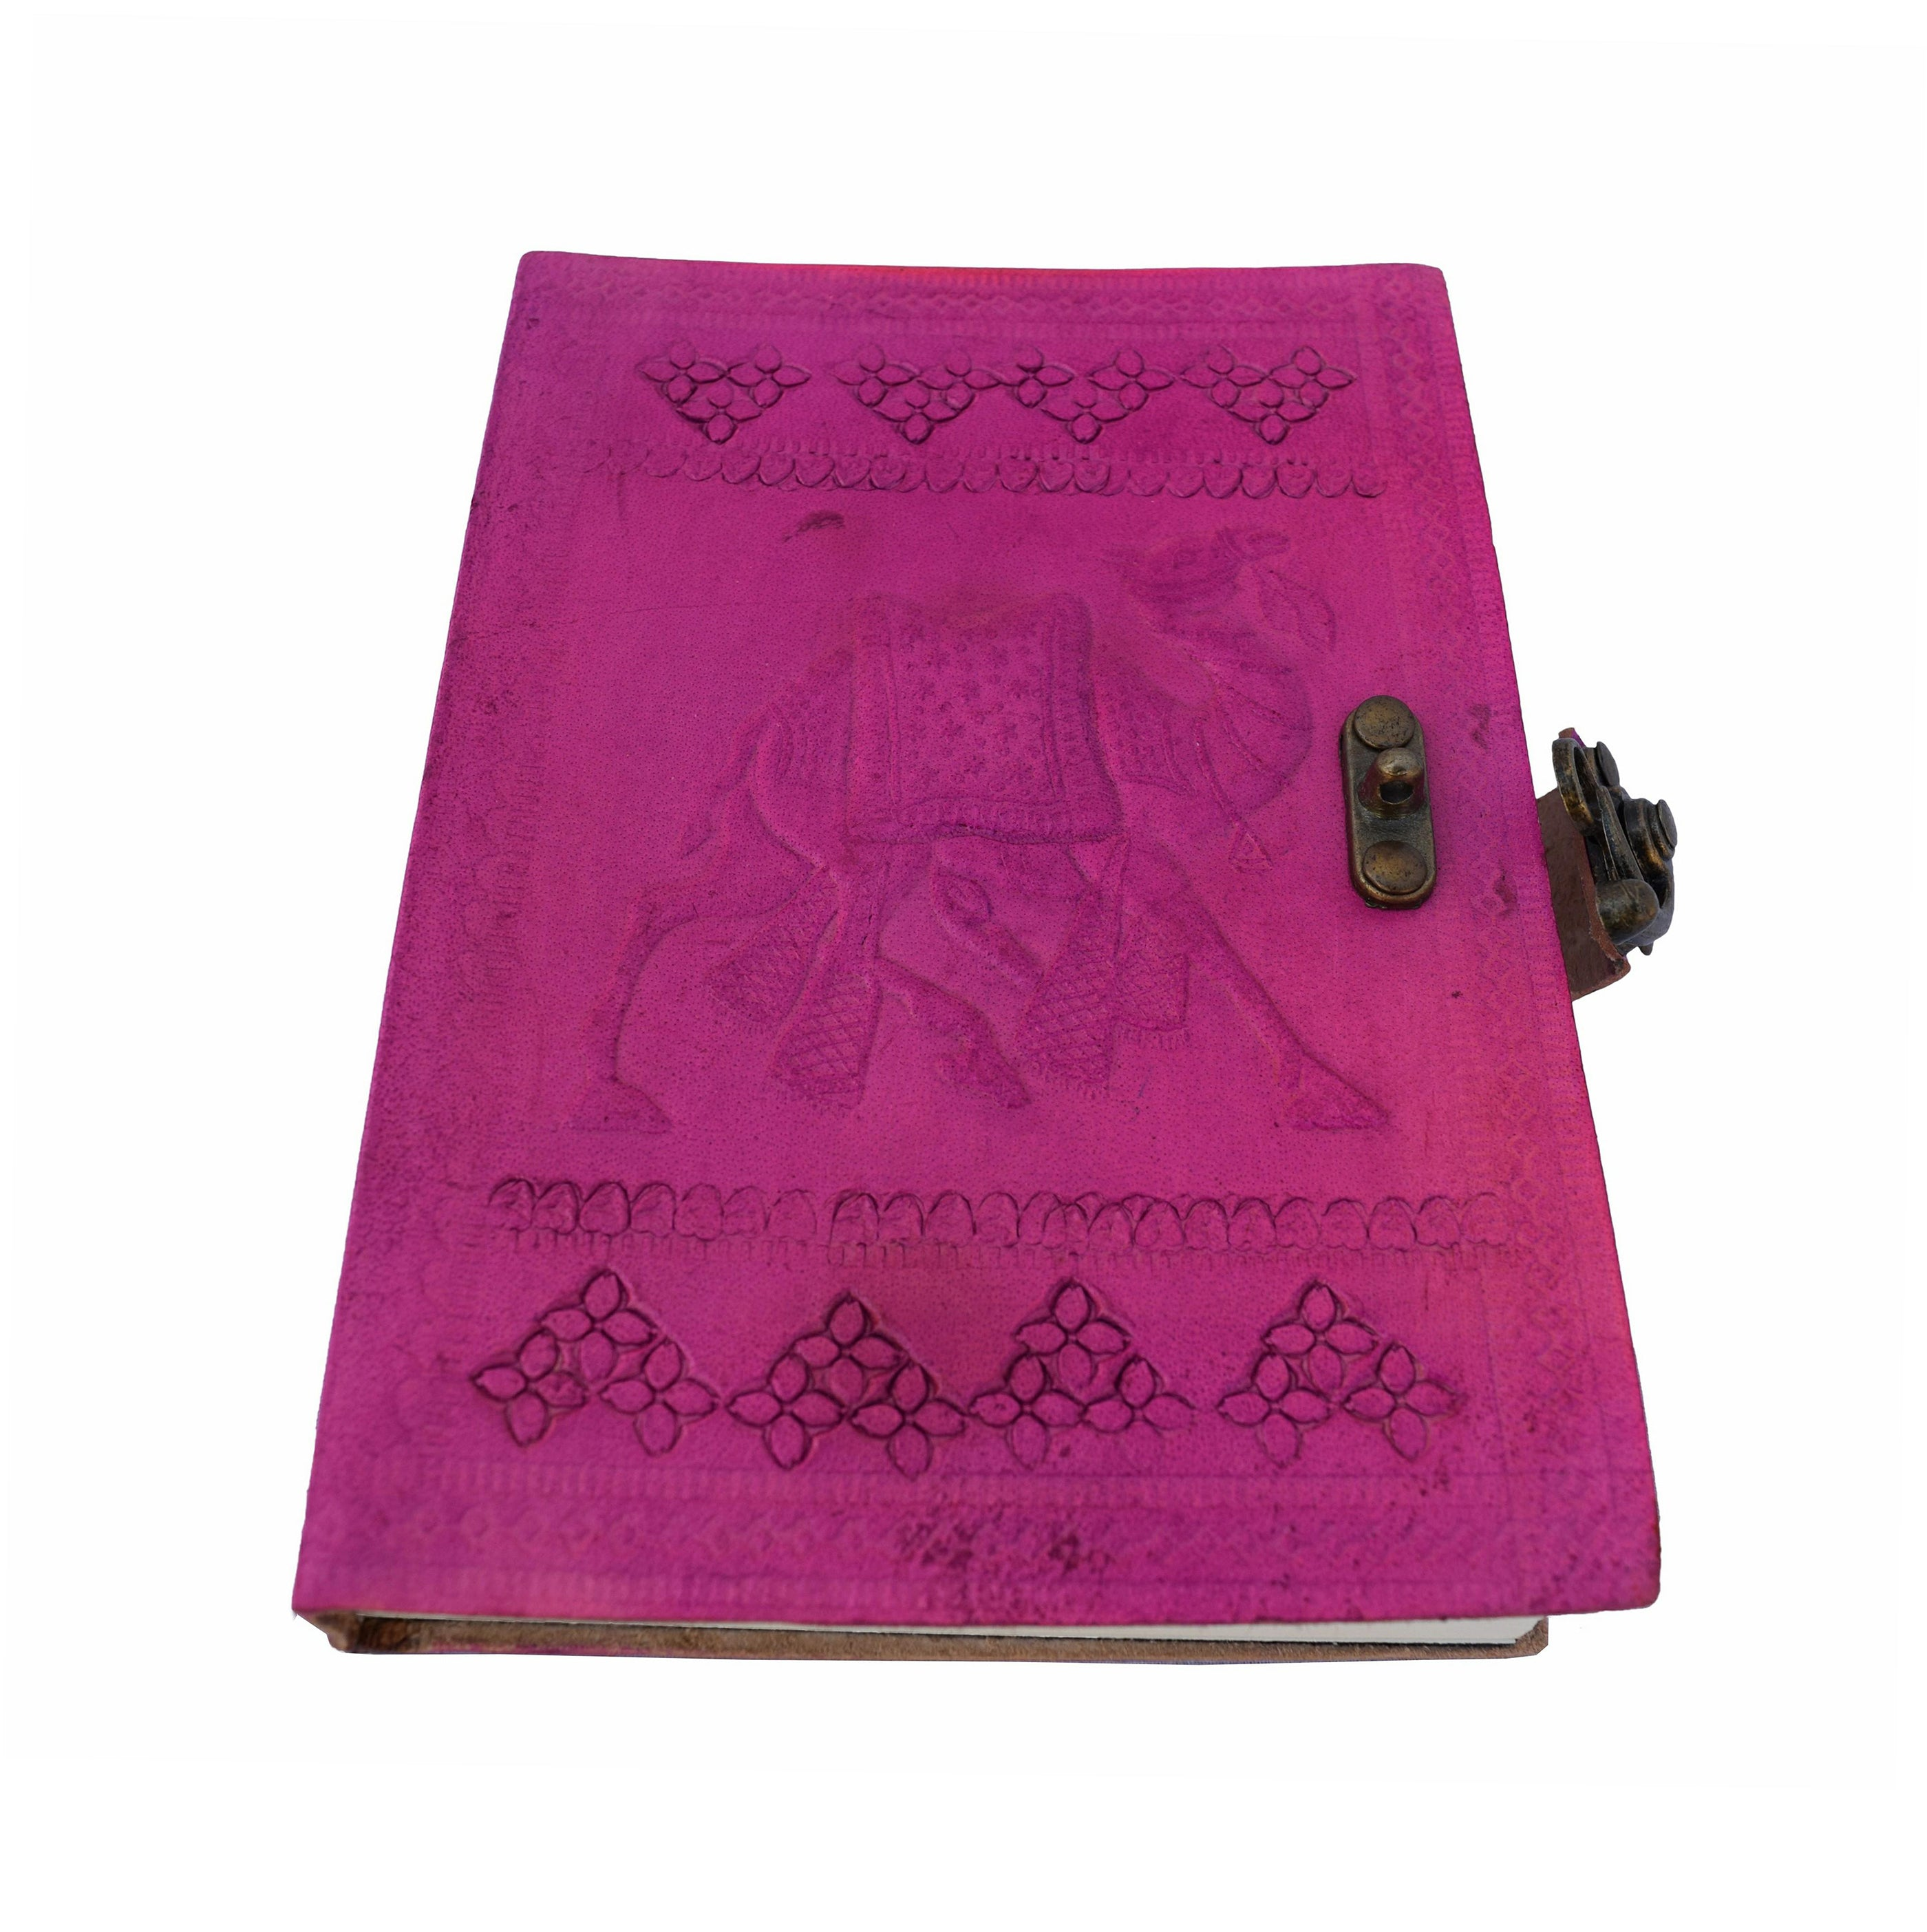 Red-violet Handmade Leather Journal with Vintage Lock Latch - thar-artefacts